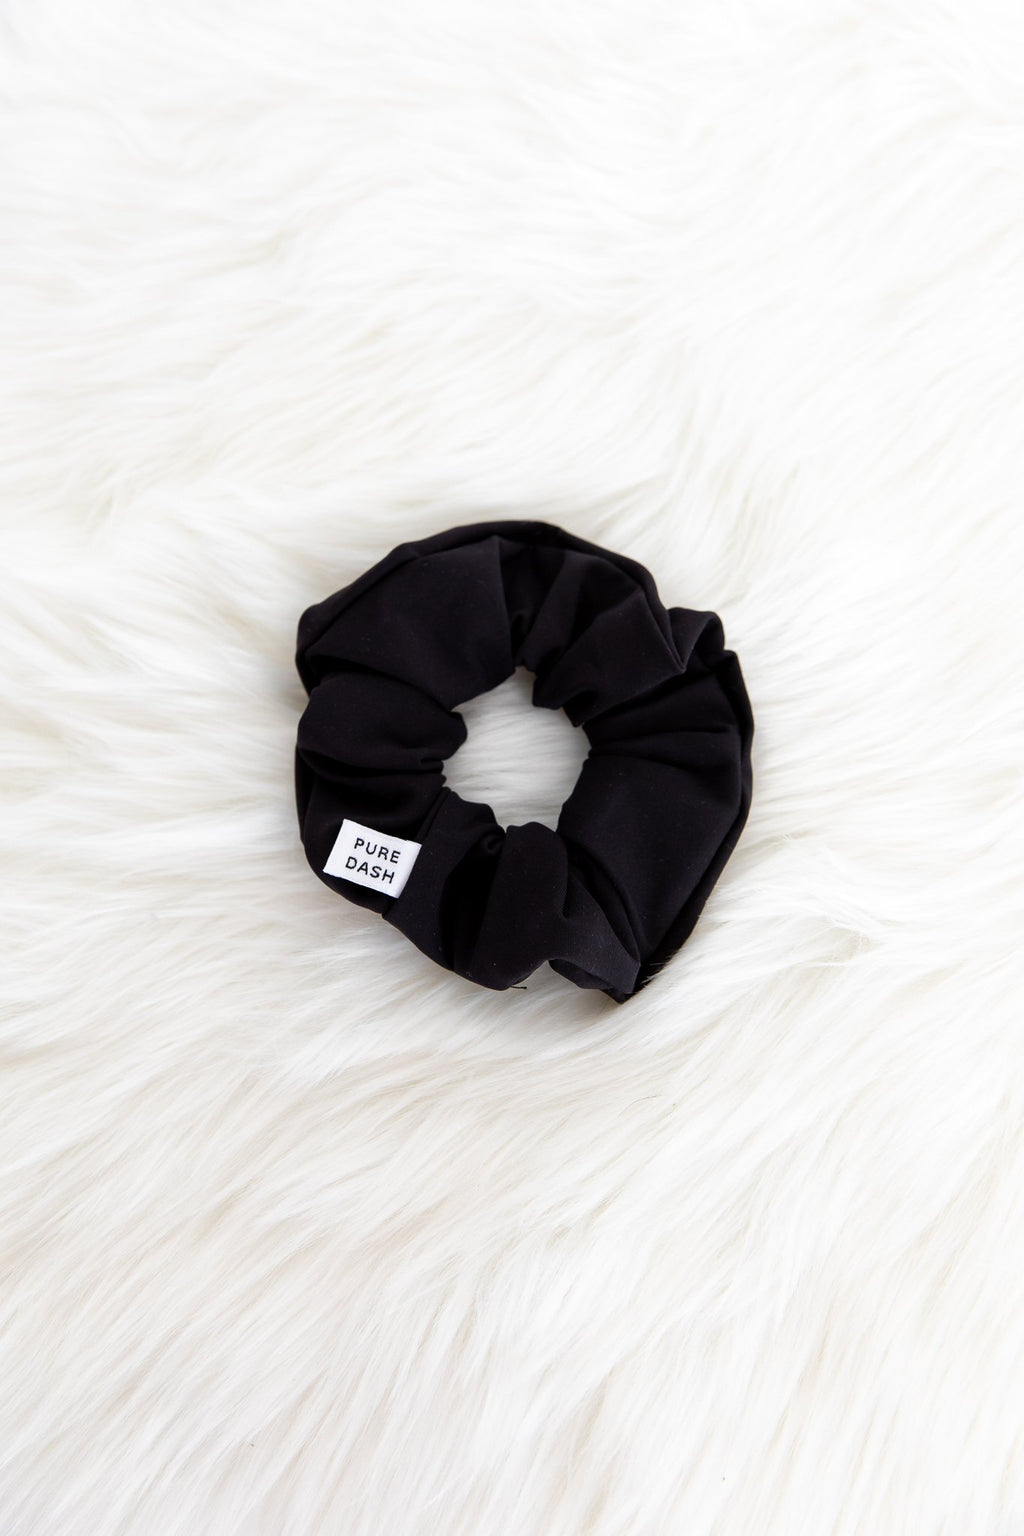 Pure Dash Scrunchie - Black